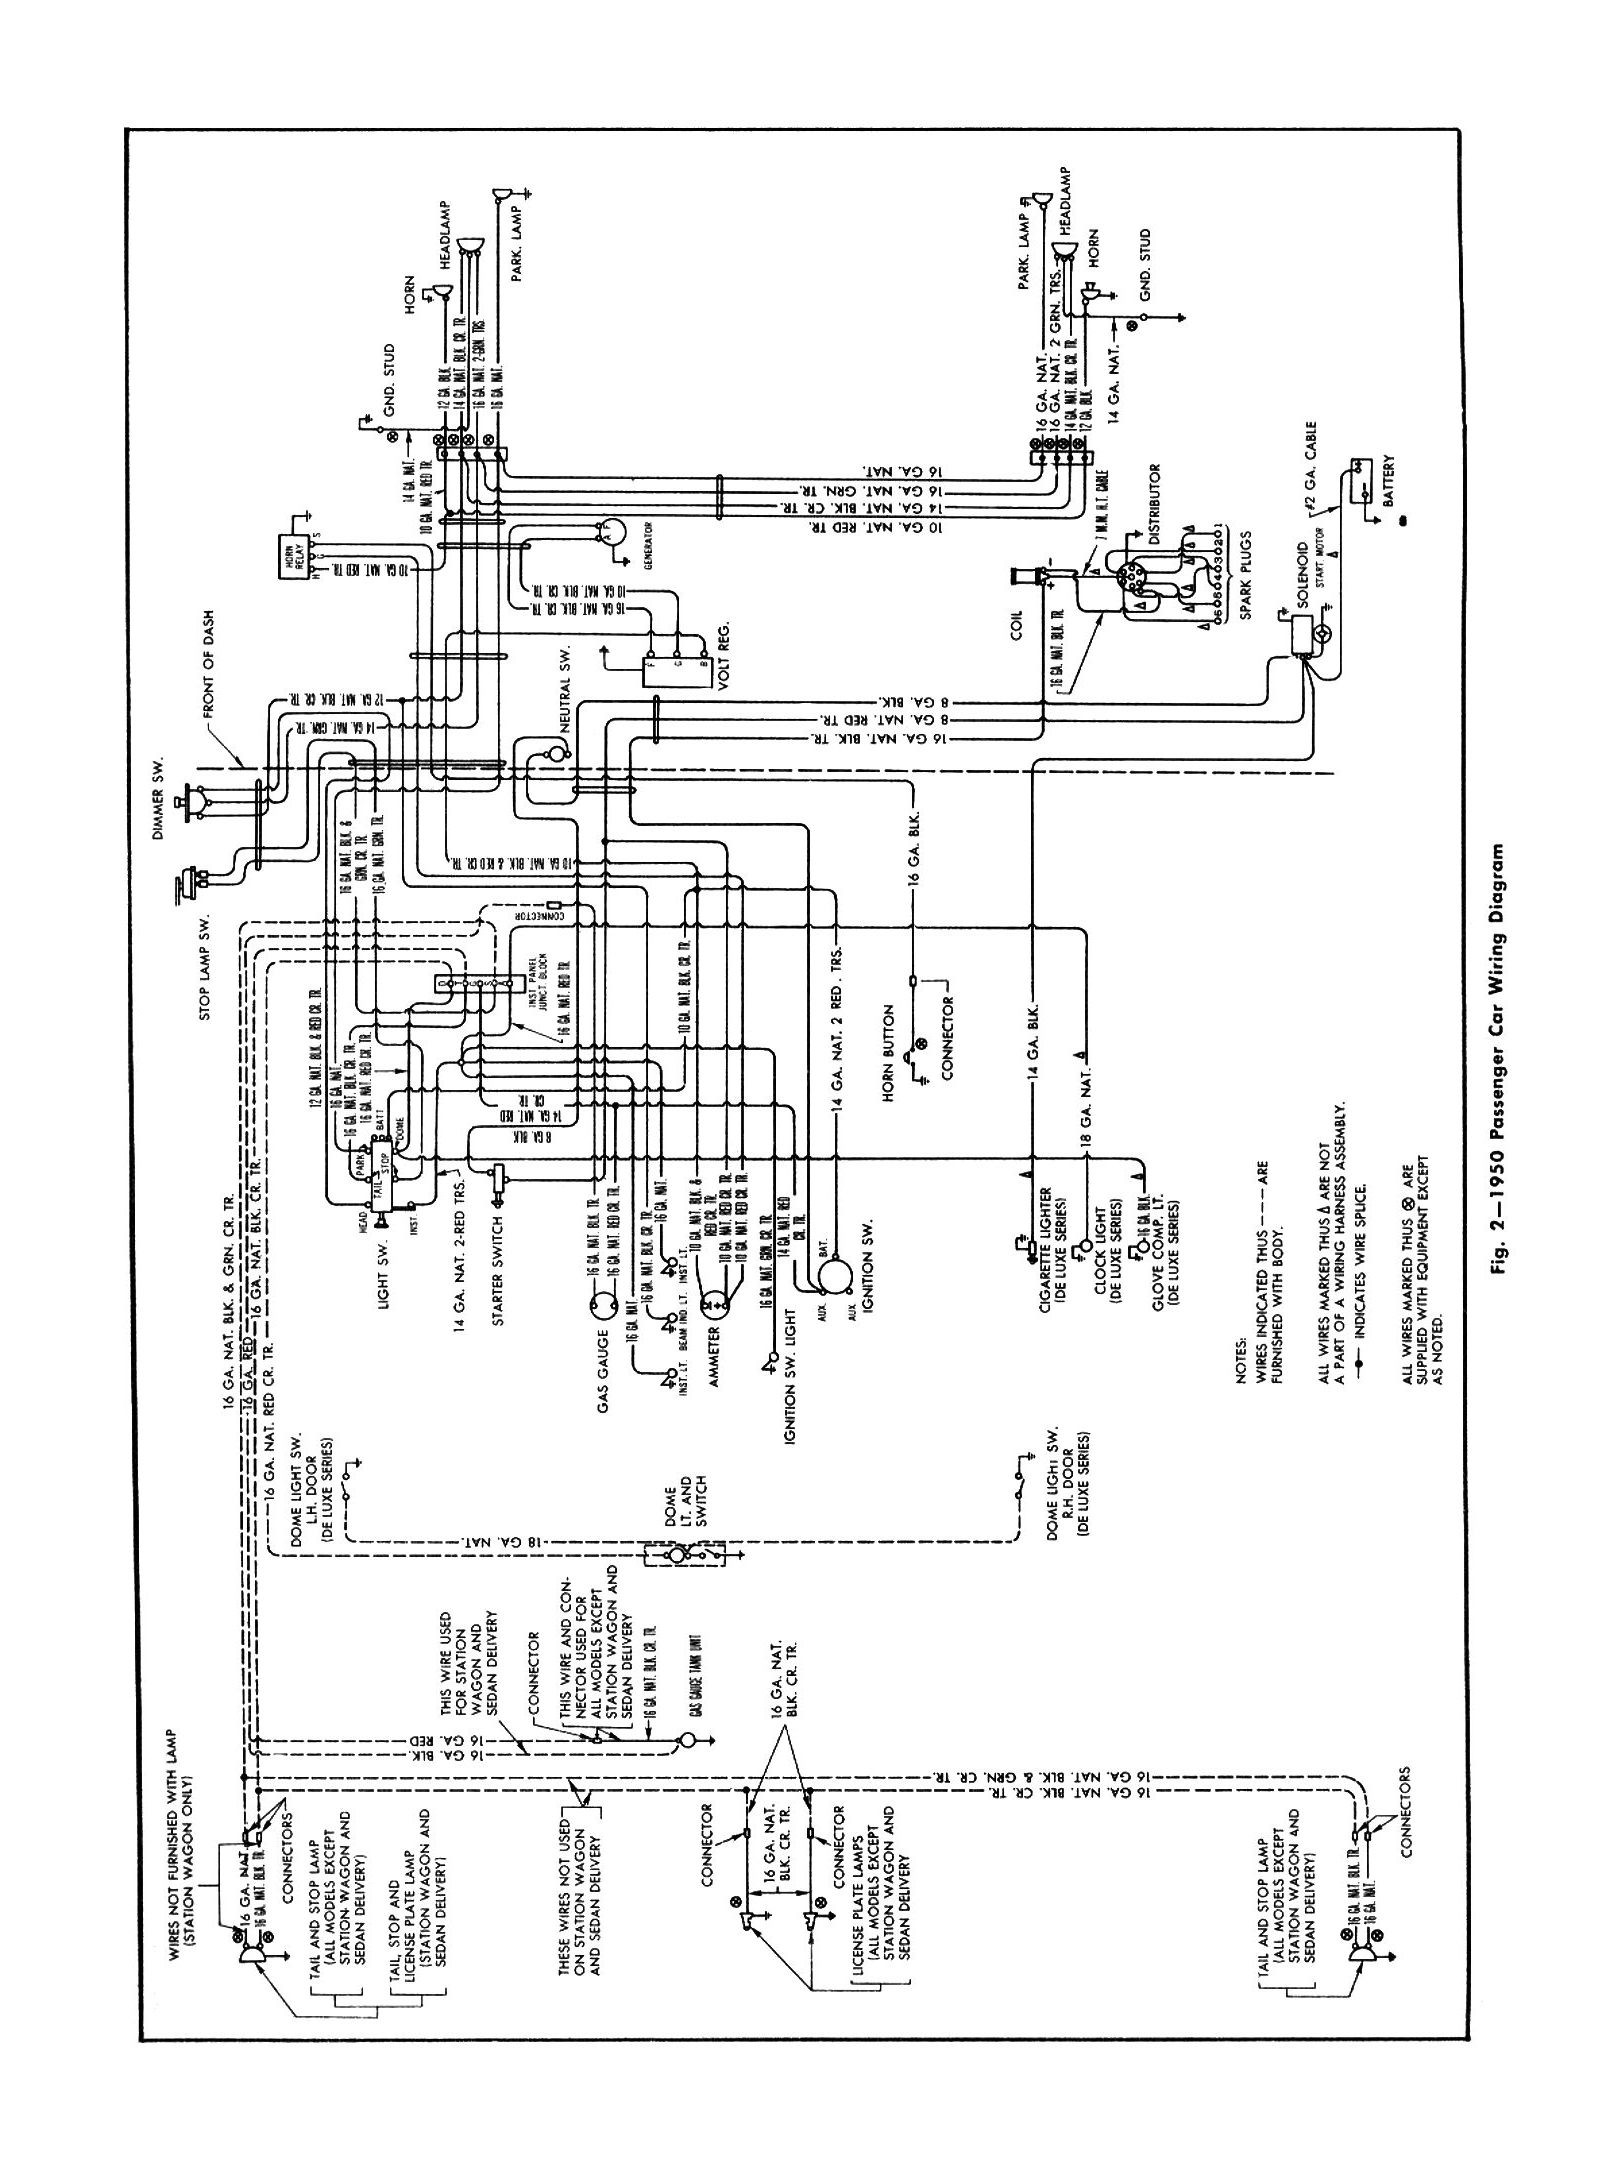 50car chevy wiring diagrams wiring diagram 53 chevy truck at reclaimingppi.co